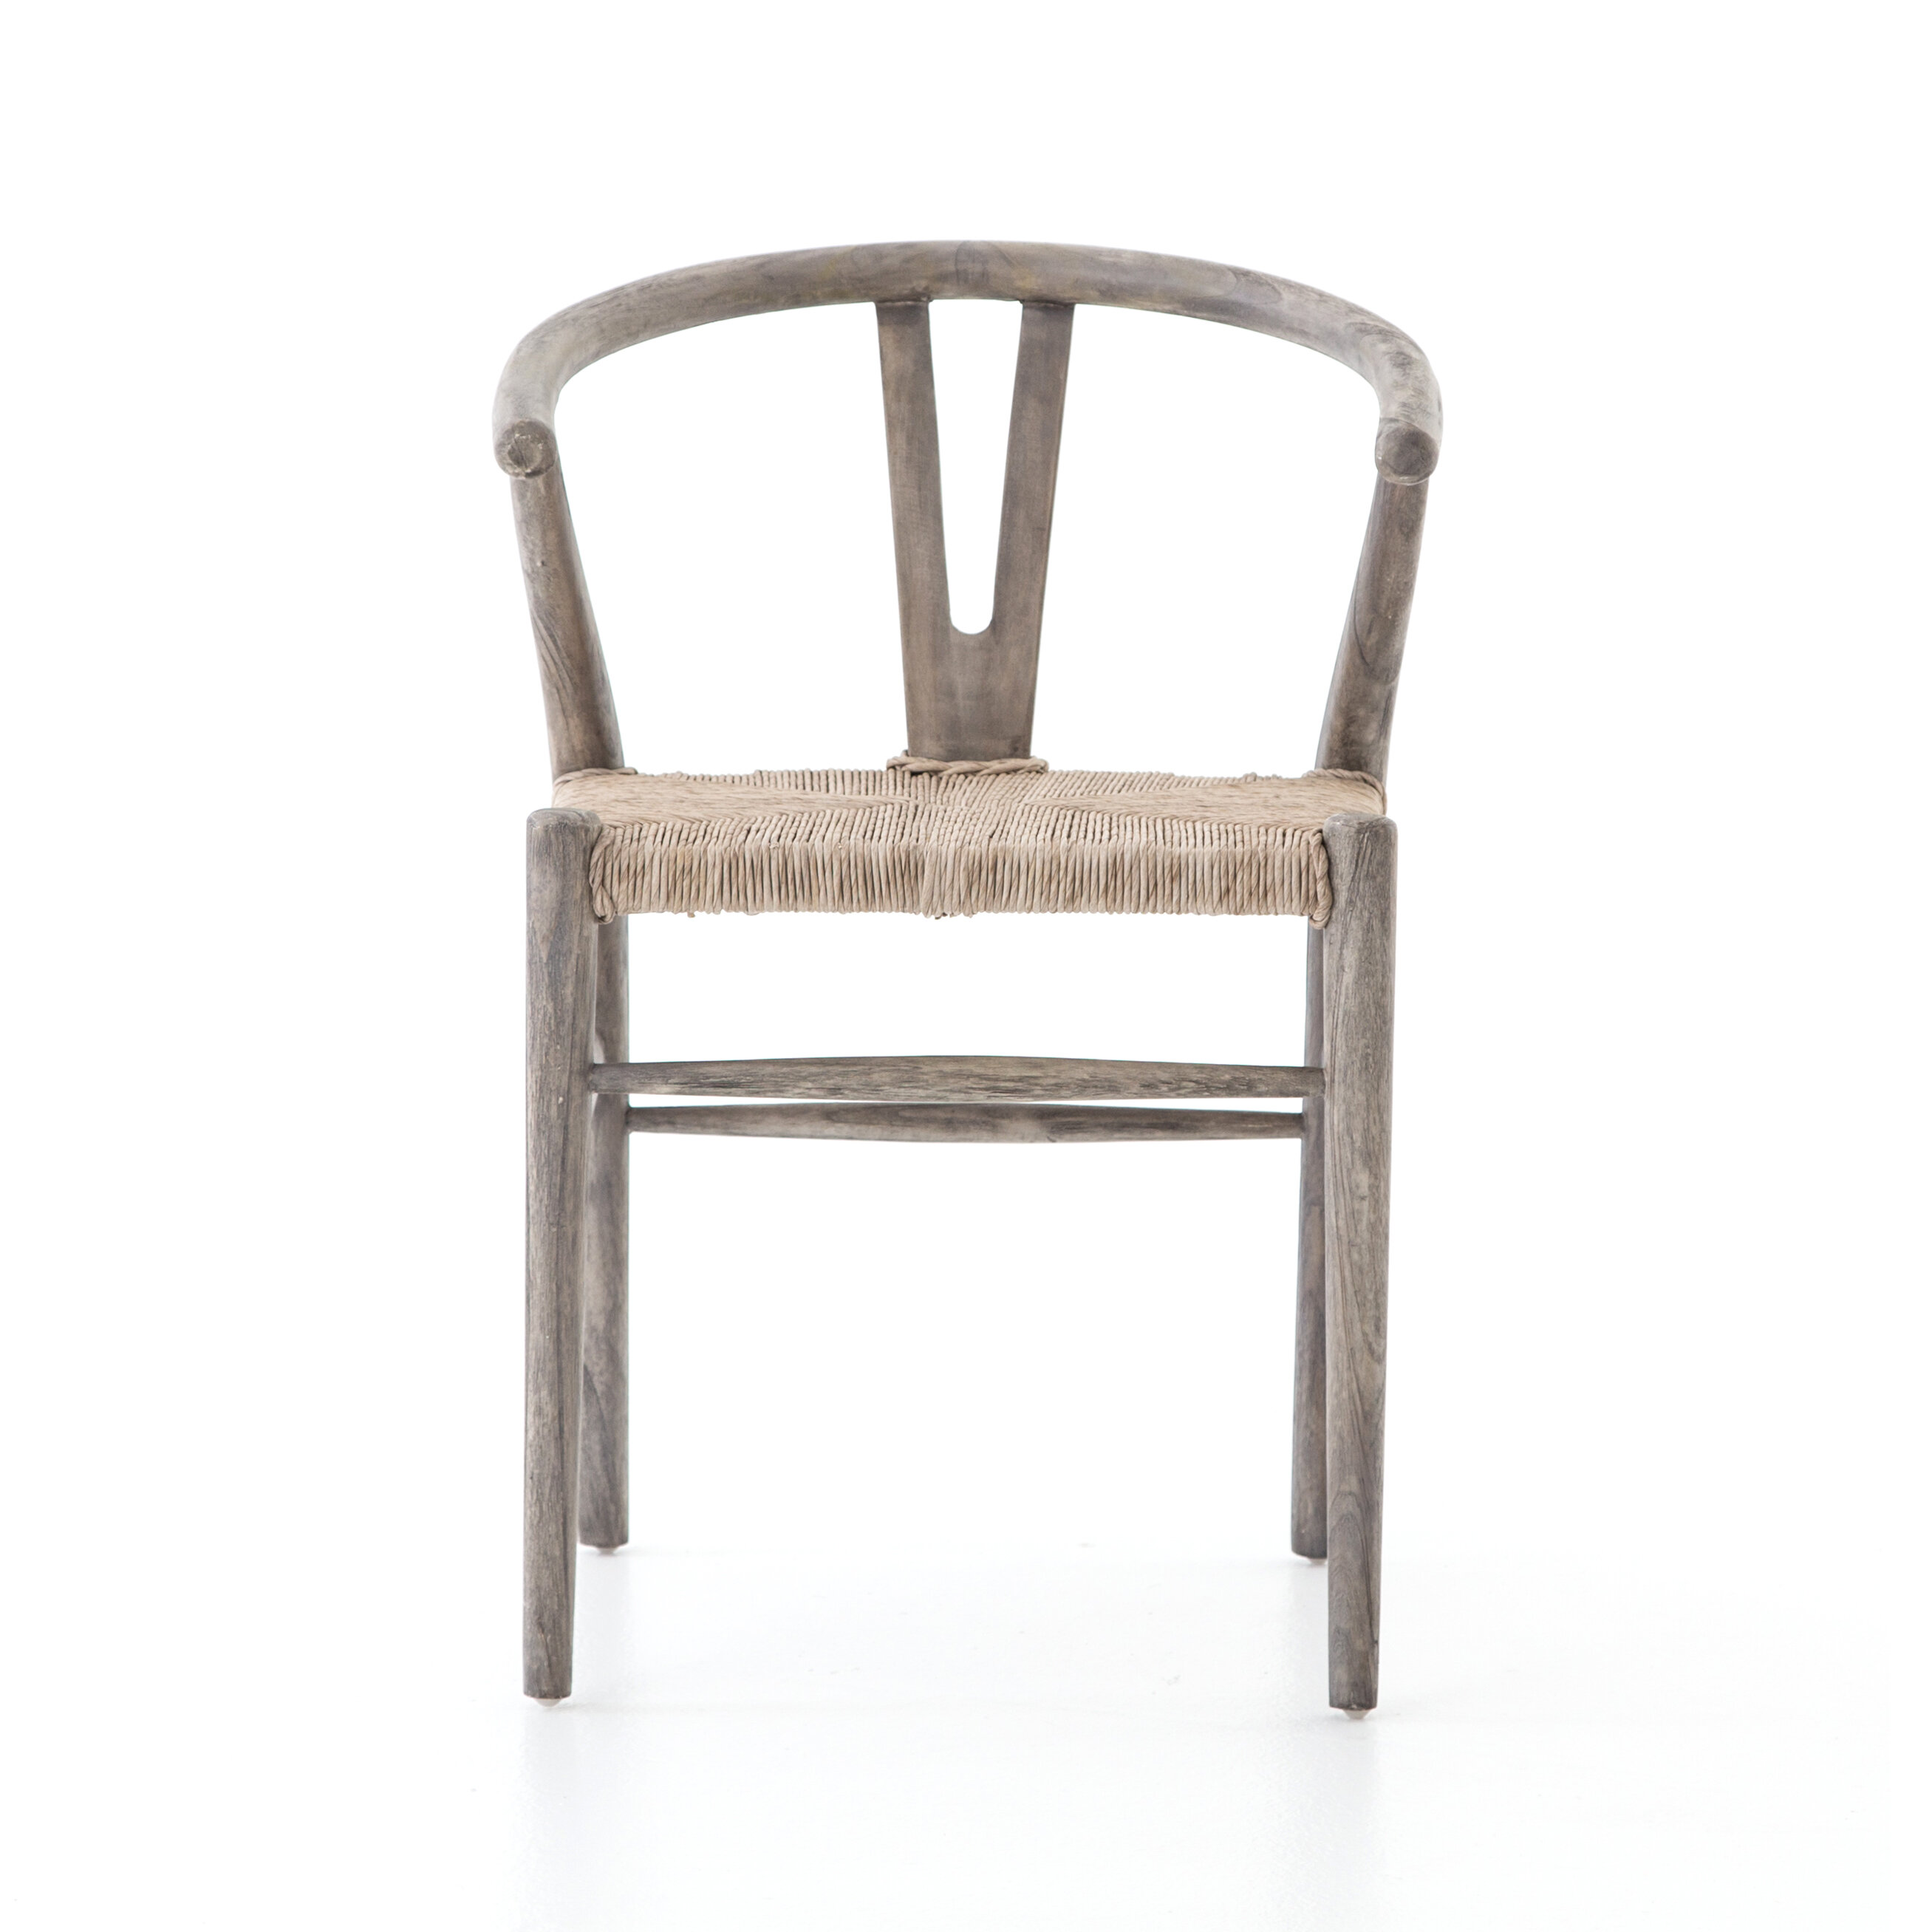 teak outdoor dining chairs. Teak Outdoor Dining Chairs S